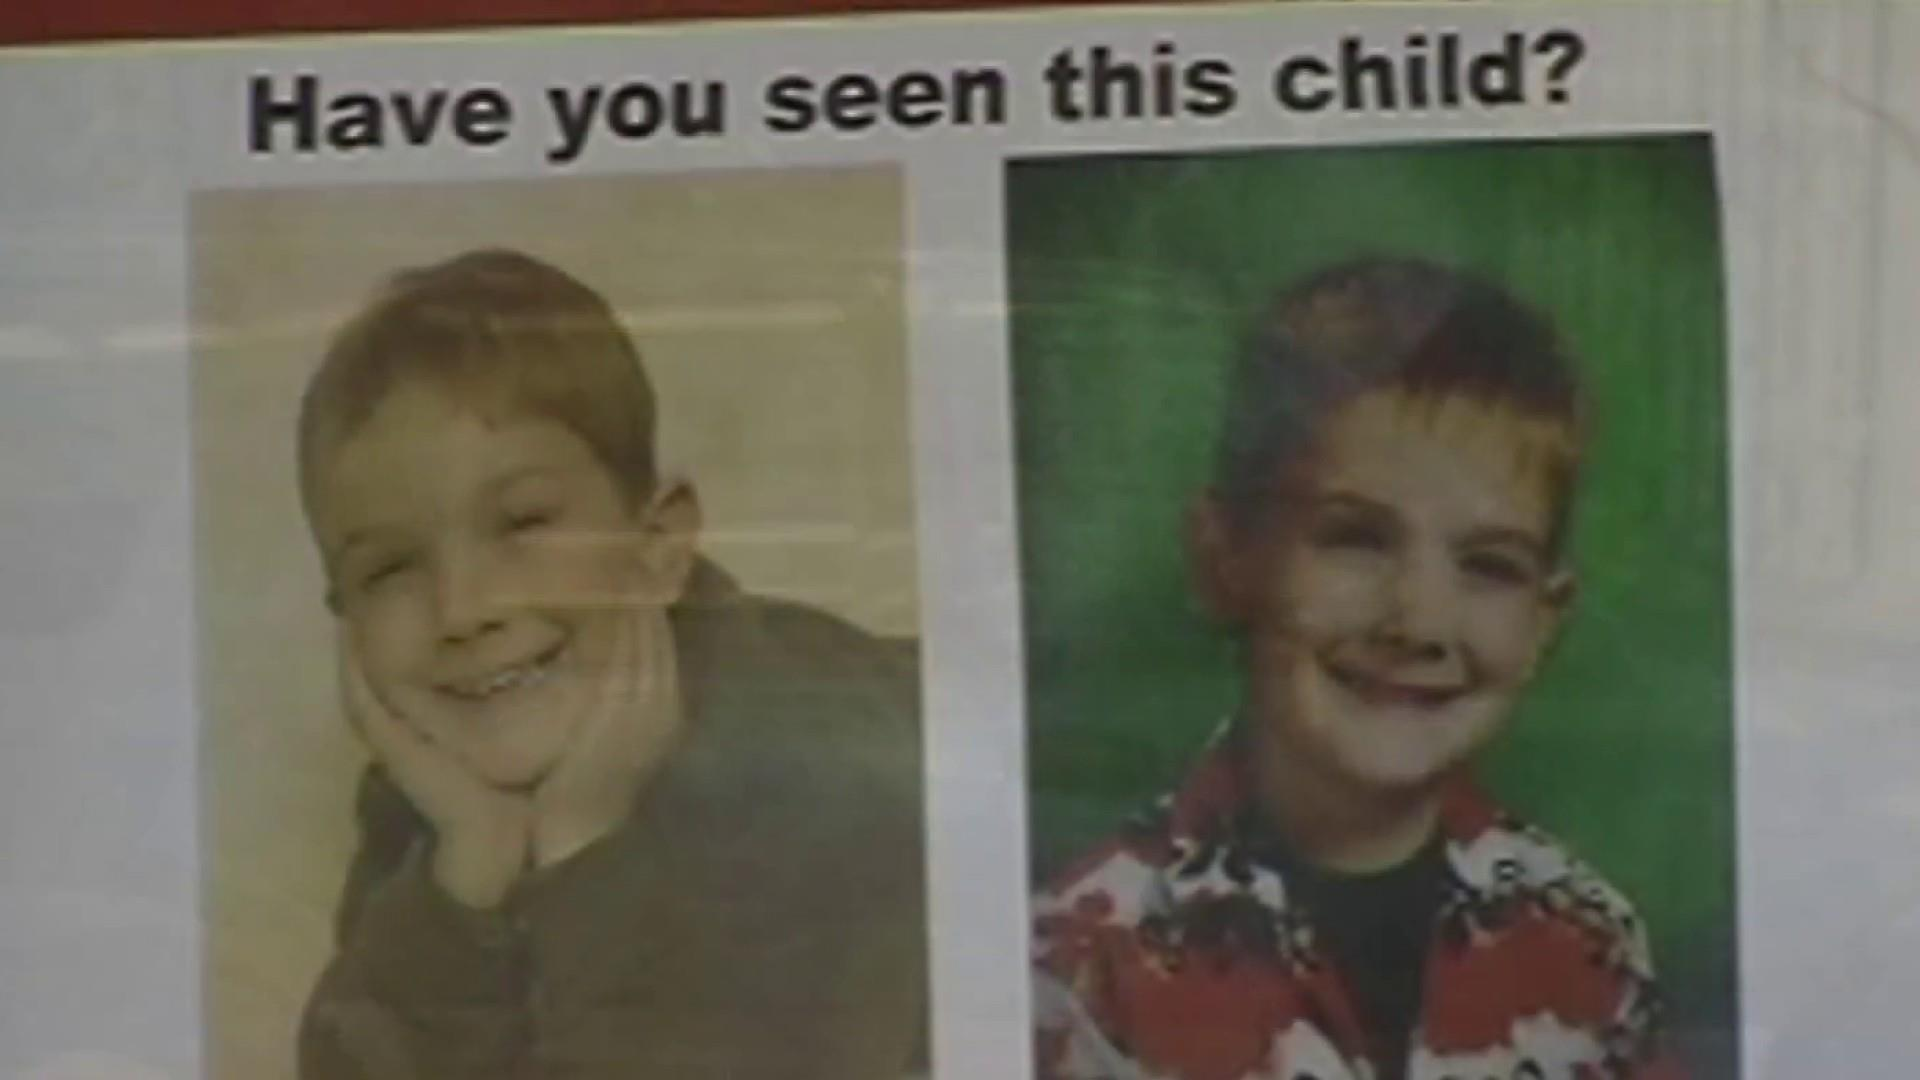 Boy who went missing 8 years ago in Illinois possibly found in Ohio